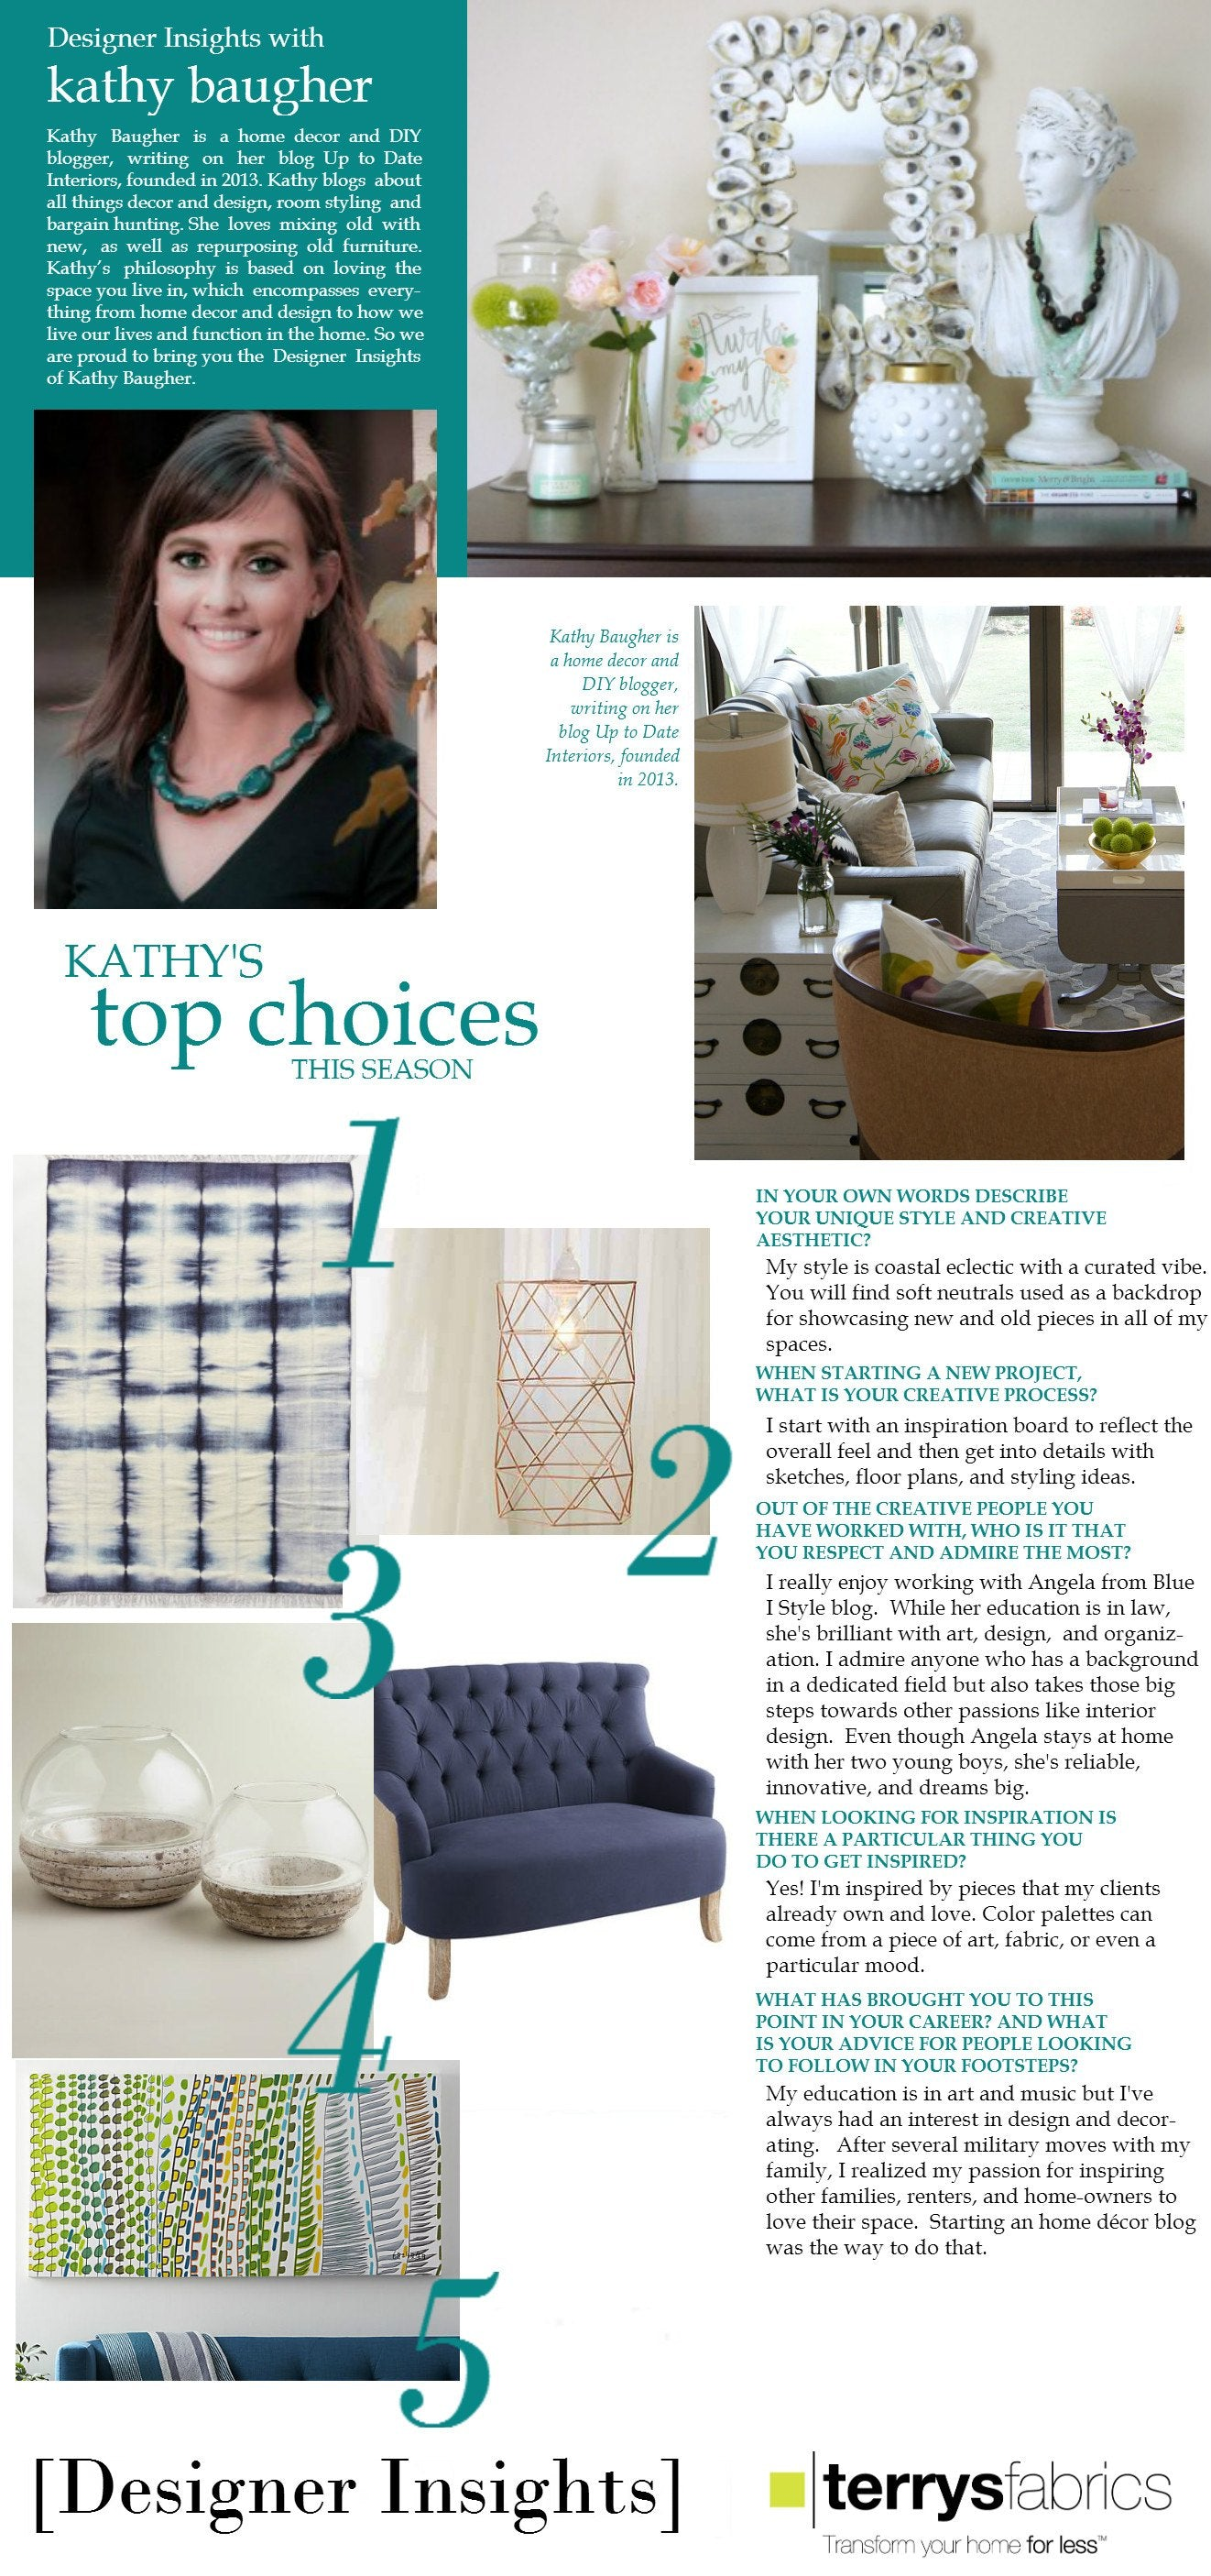 Designer Insights - Kathy Baugher